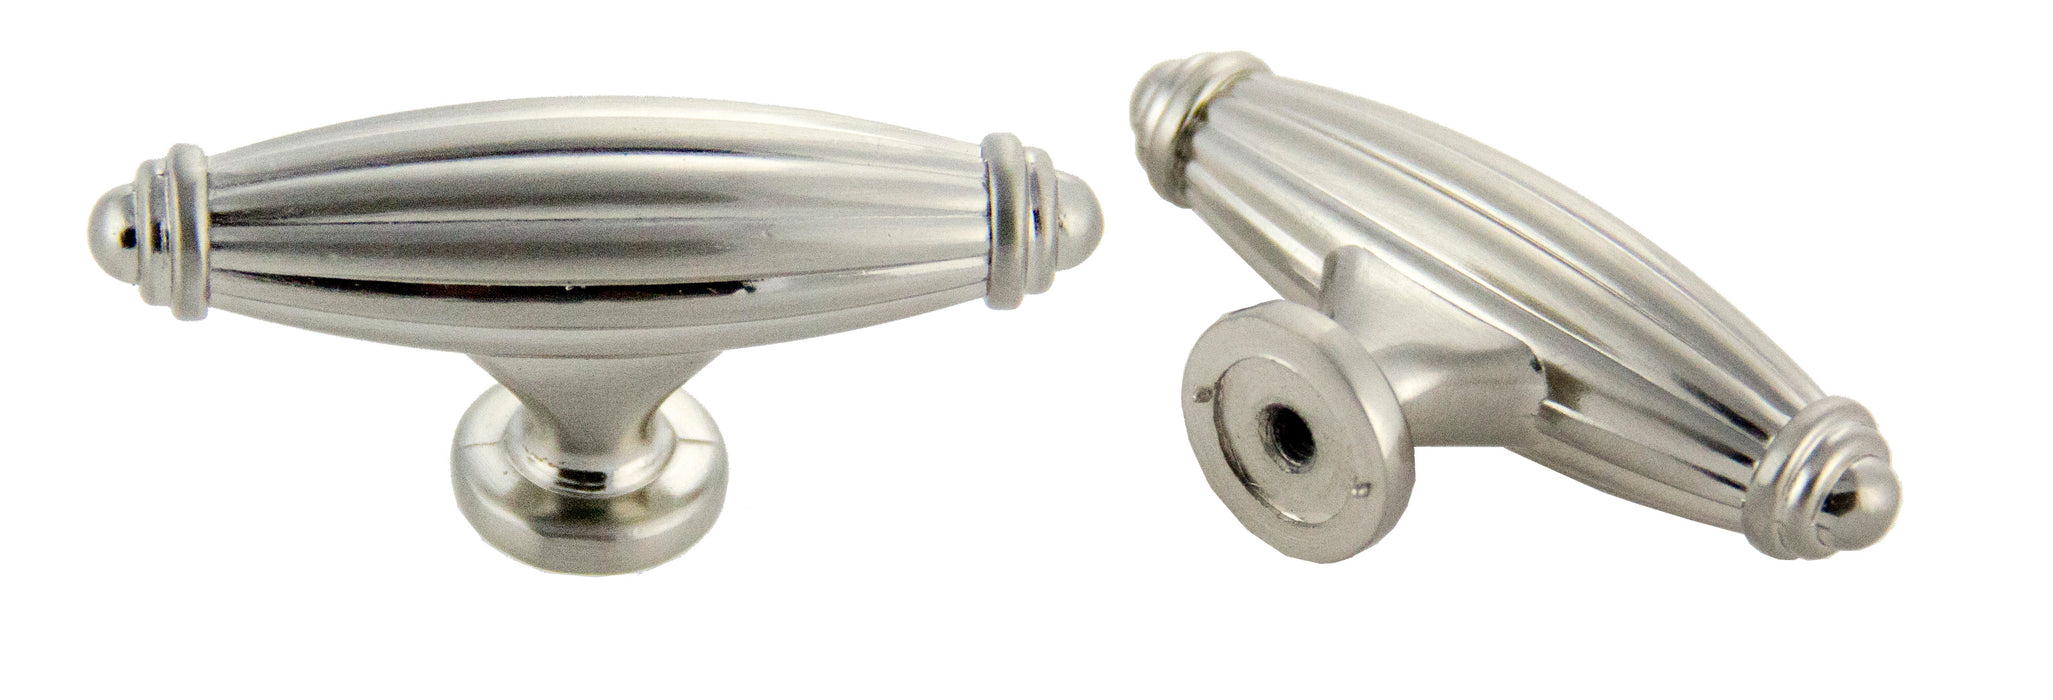 "Andrew Claire Collection 2-1/2"" Deco Knob Satin Nickel (AC-86618.SN)"